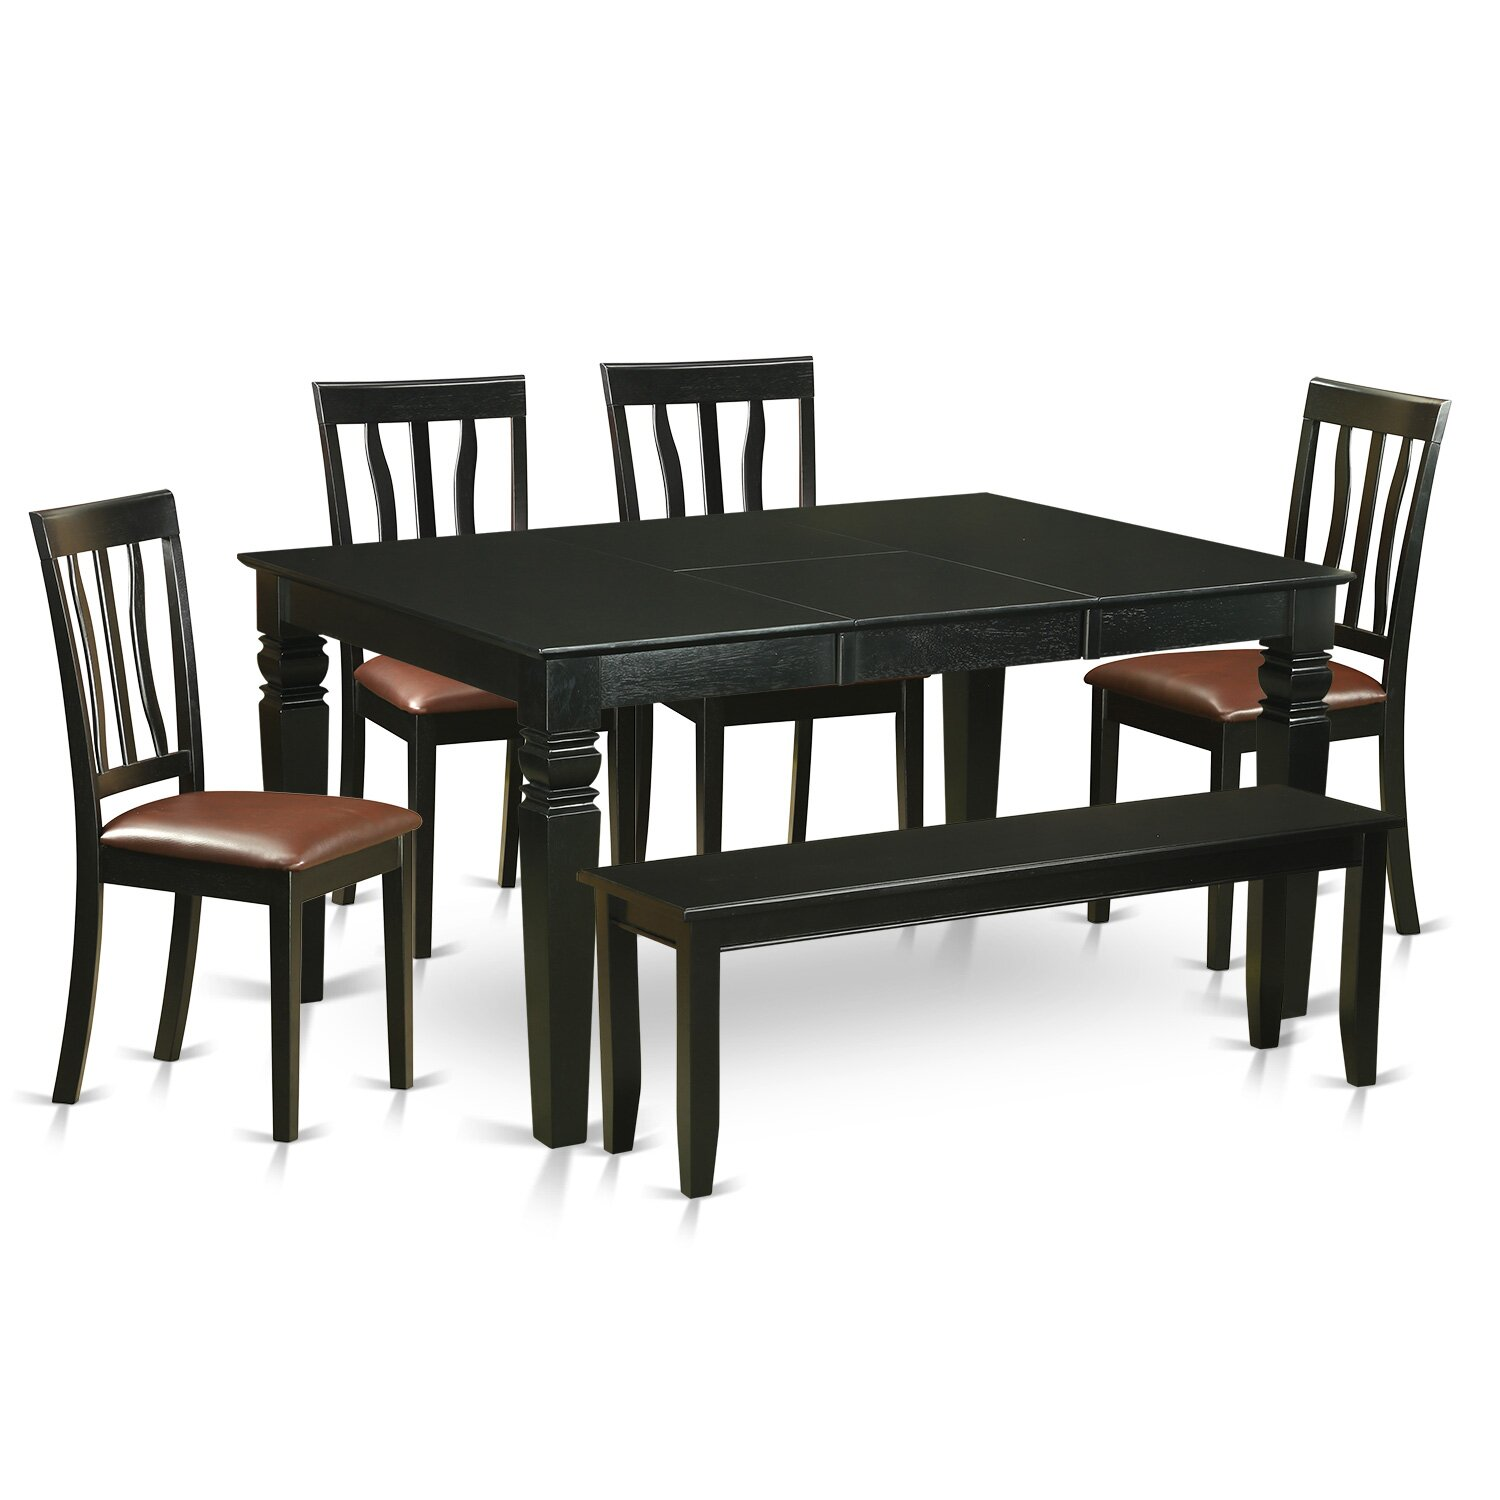 Wooden importers weston 6 piece dining set wayfair for Dining set with bench and chairs